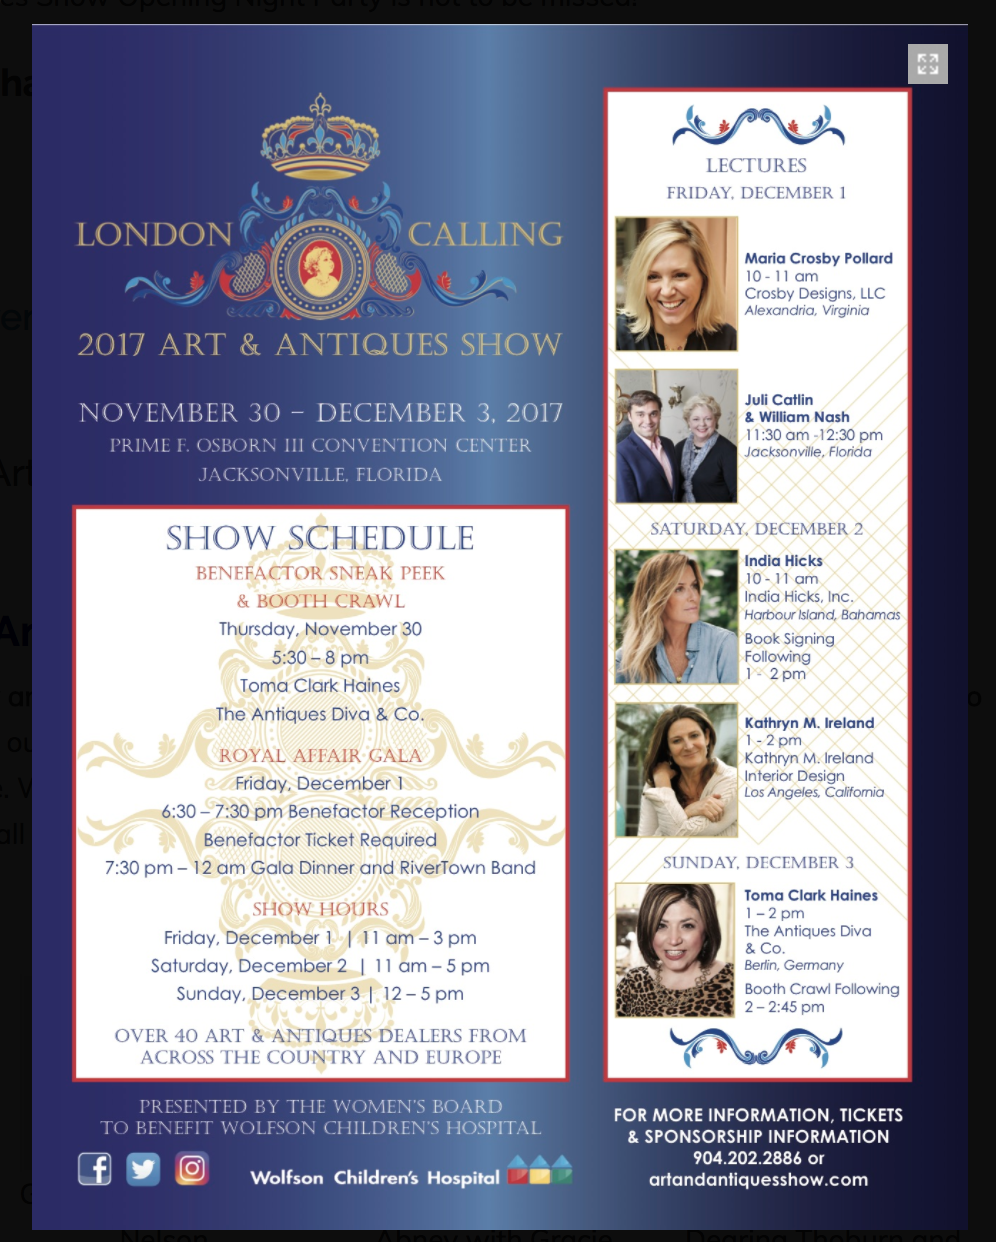 London Calling Art & Antiques Show